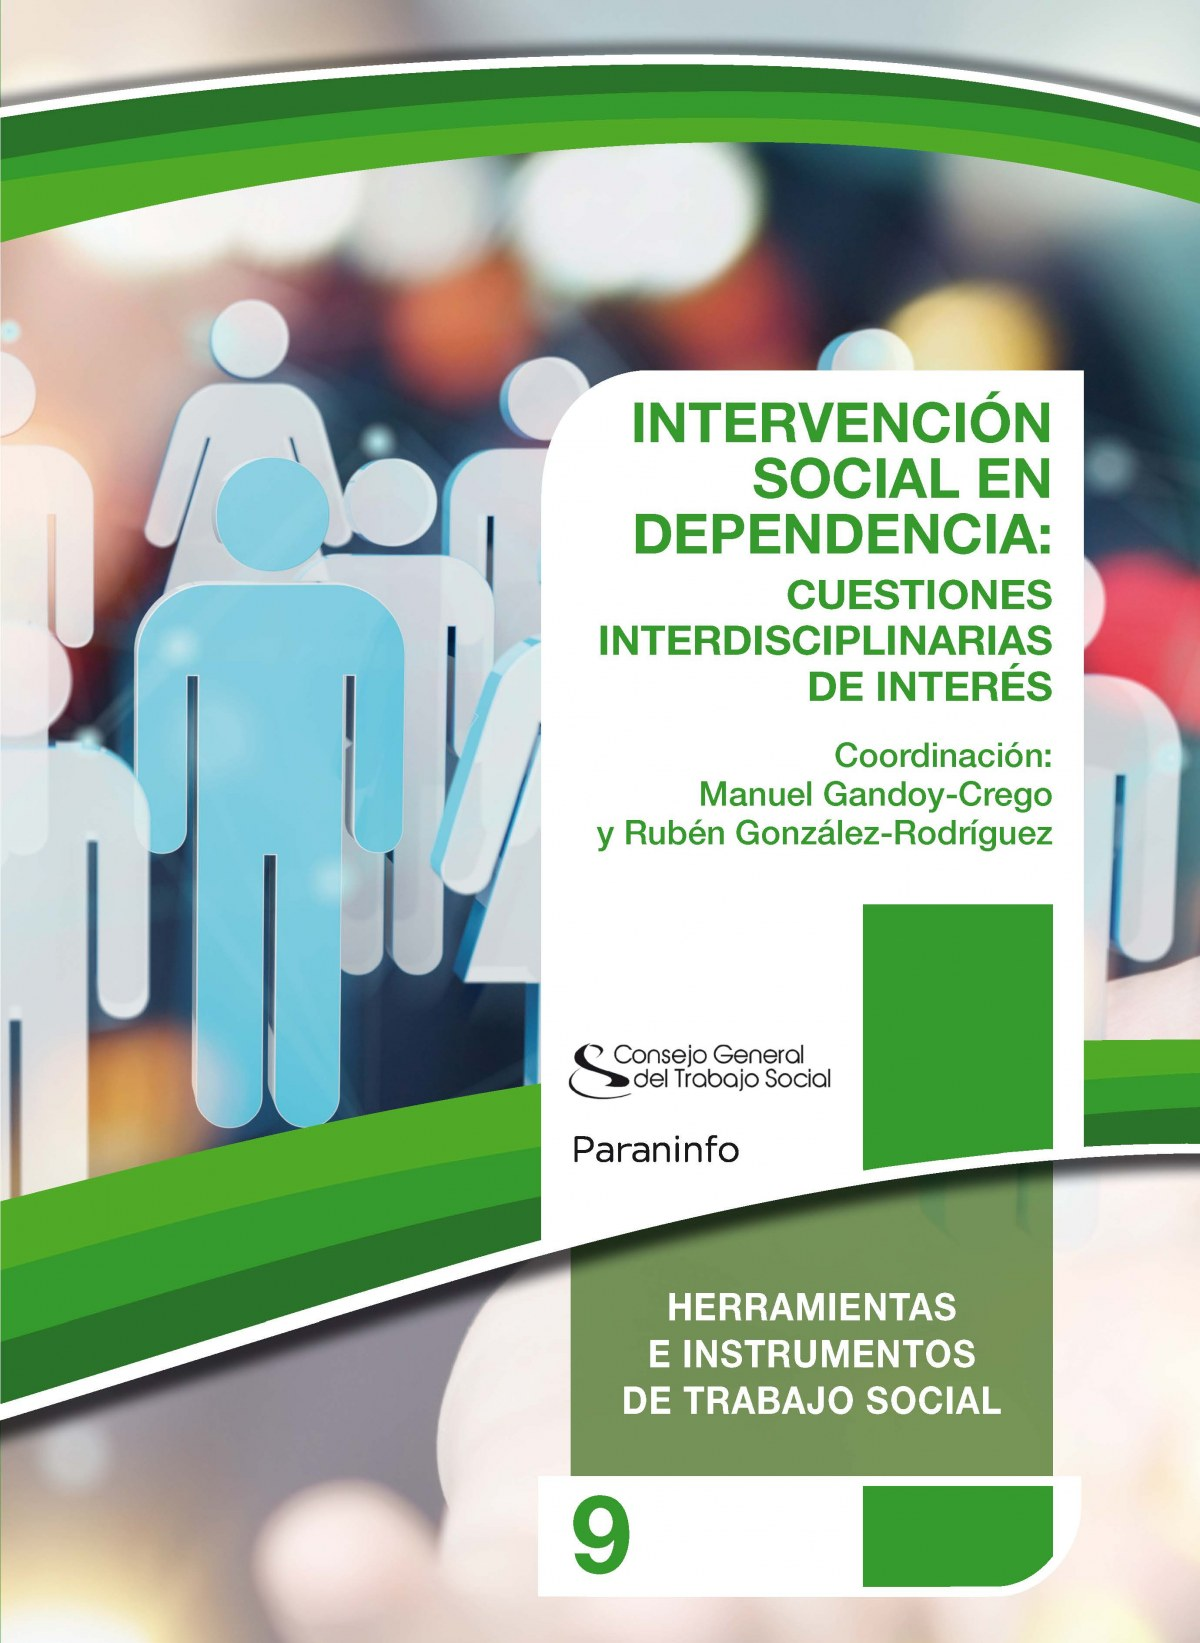 9.INTERVENCION SOCIAL EN DEPENDENCIA:CUESTIONES INTERDISC.